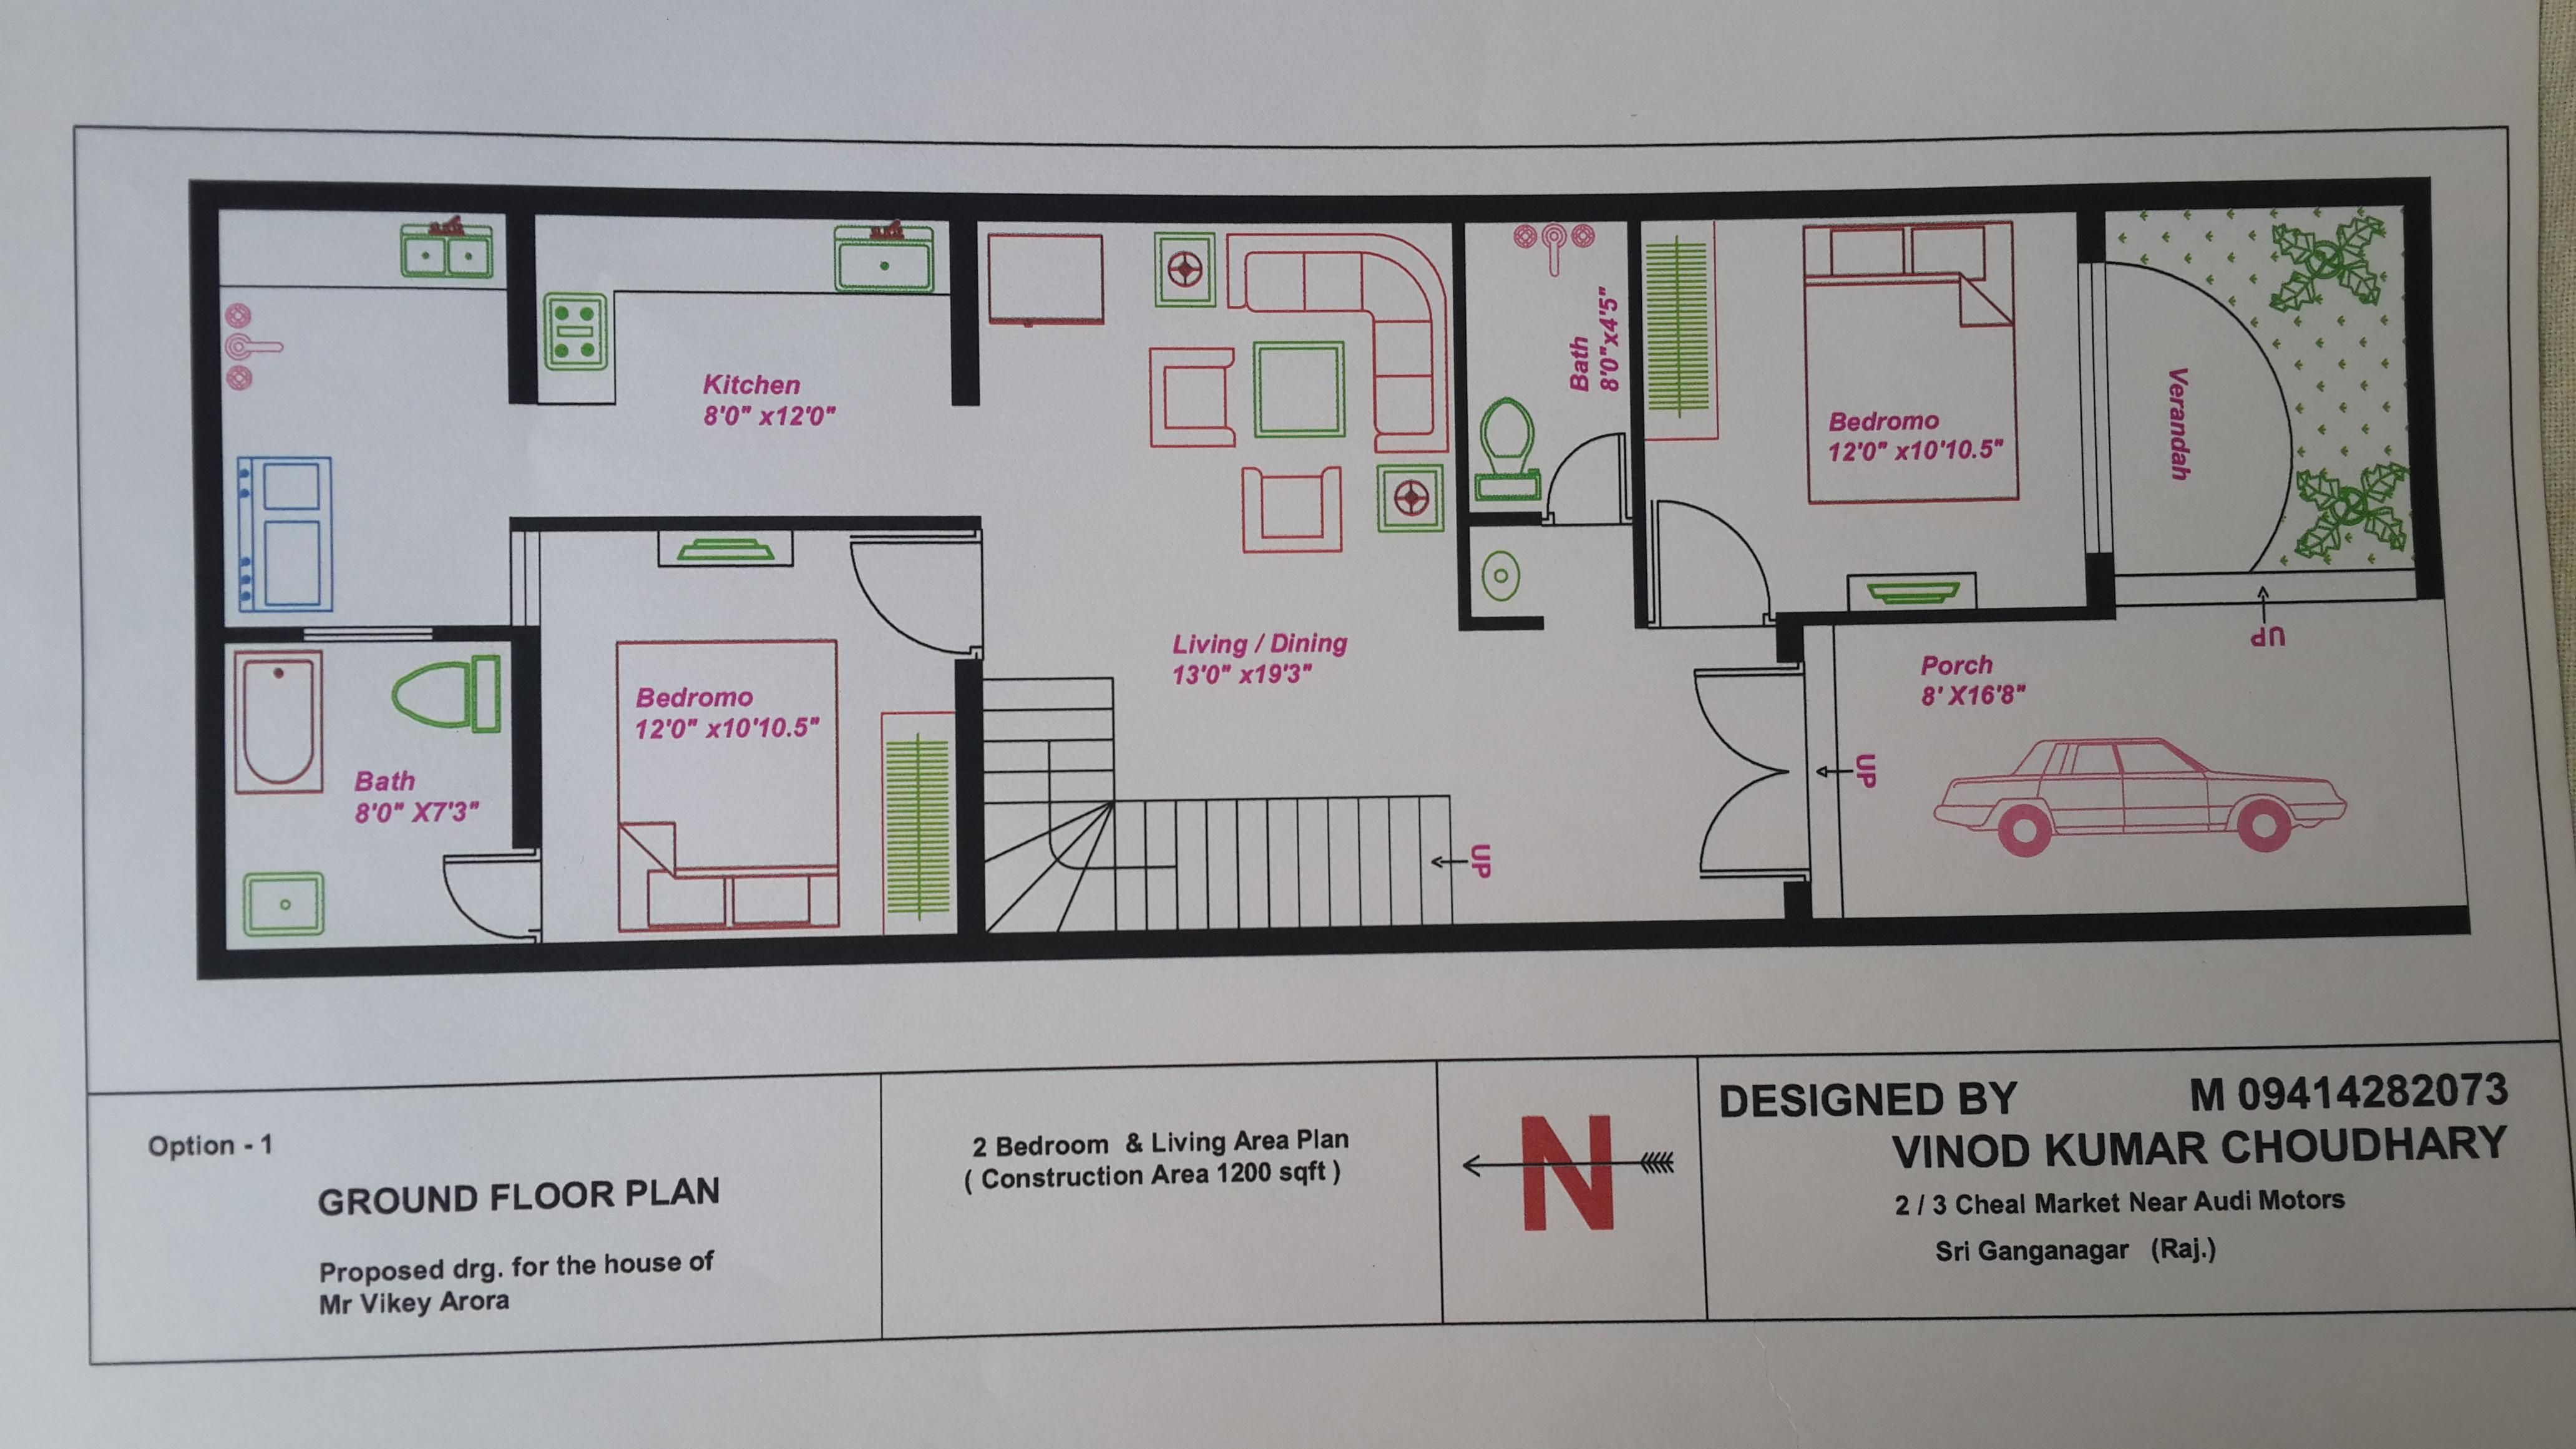 20 X 60 house plans | In-law suite in 2018 | Pinterest | House plans  X House Plan Design on 20 x 40 home plan, gym floor plan design, house floor plan design, 40 x 60 finish out design, best exterior home design,